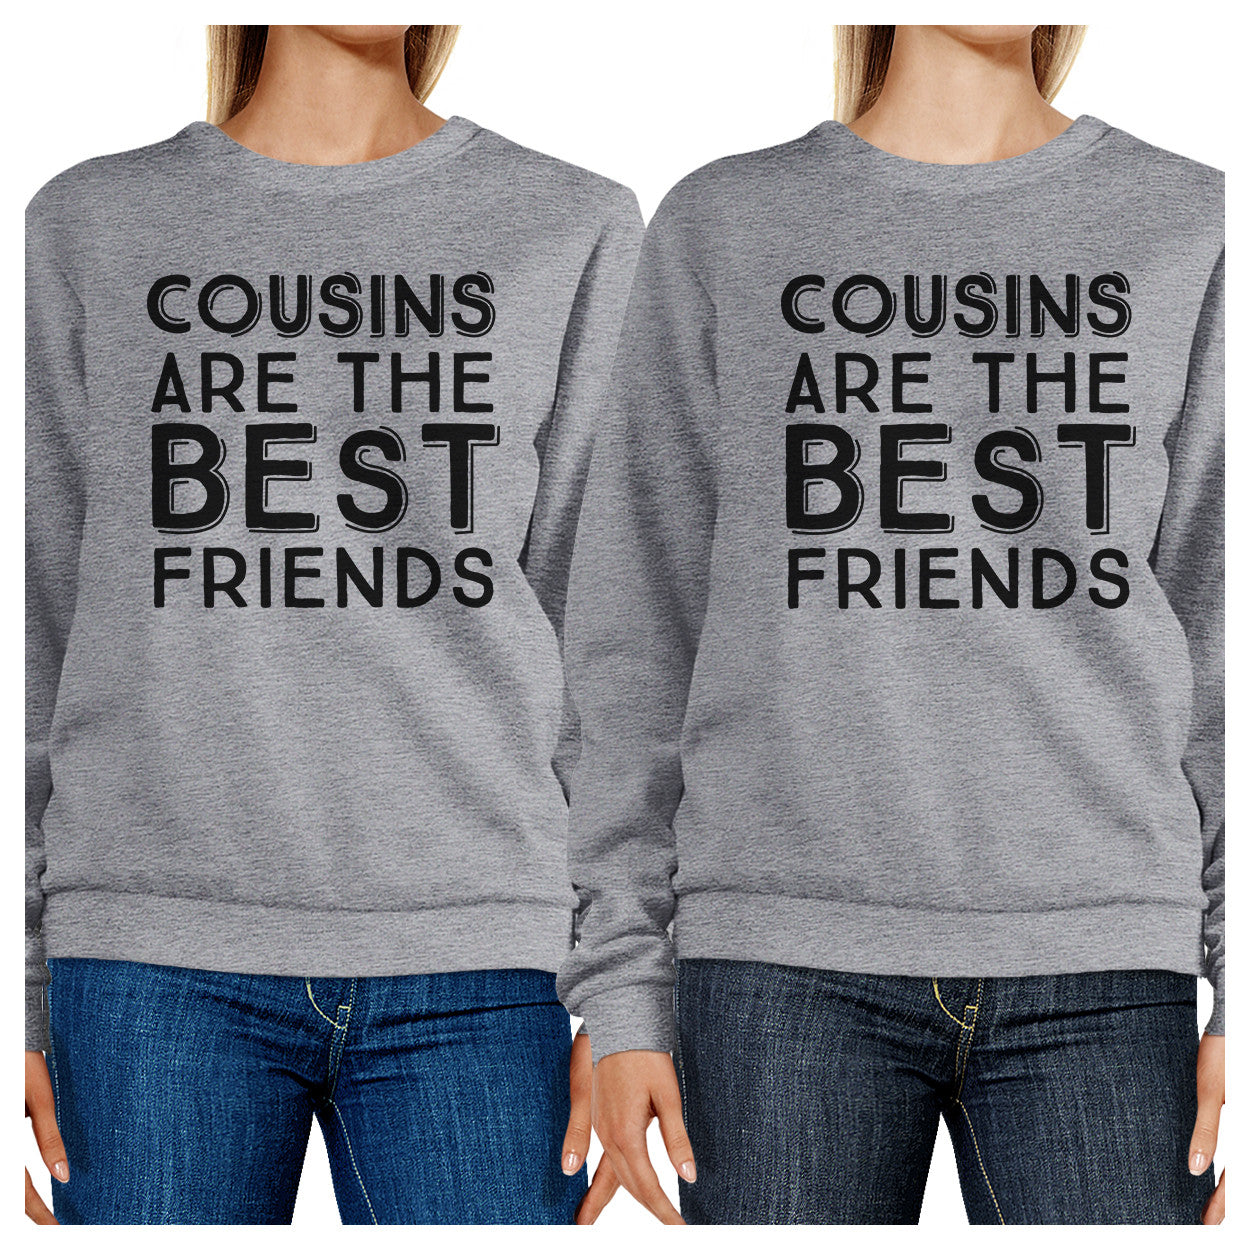 Cousin - 365 IN LOVE - Matching Gifts Ideas